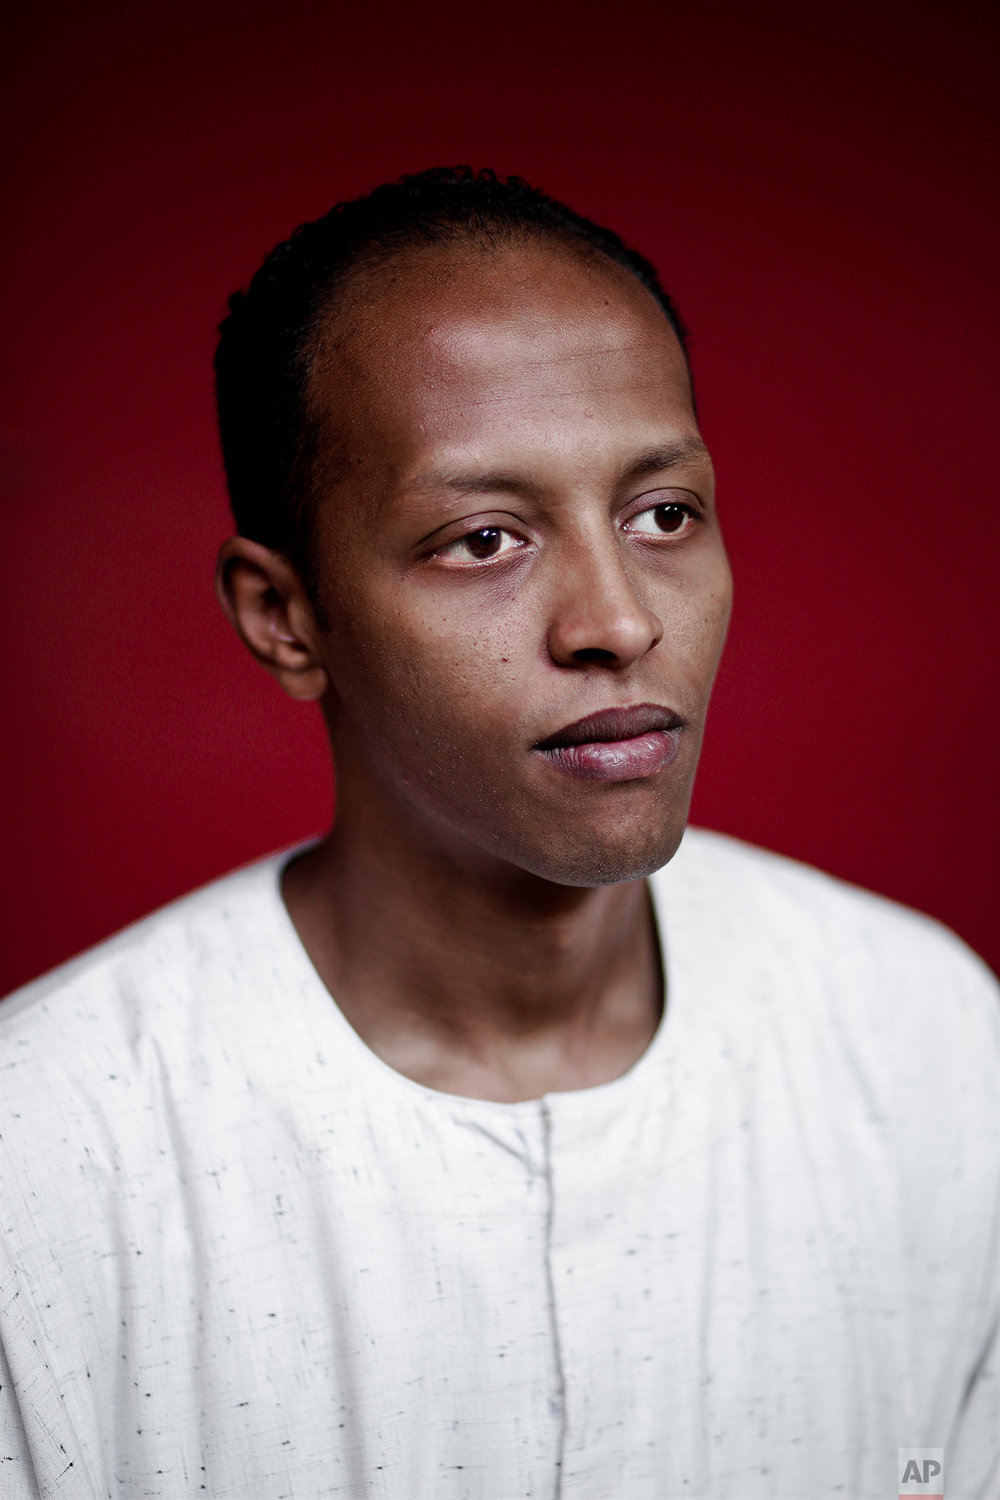 Nubian activist Waleed Toka poses for a photograph in Cairo, Egypt. (AP Photo/Nariman El-Mofty)